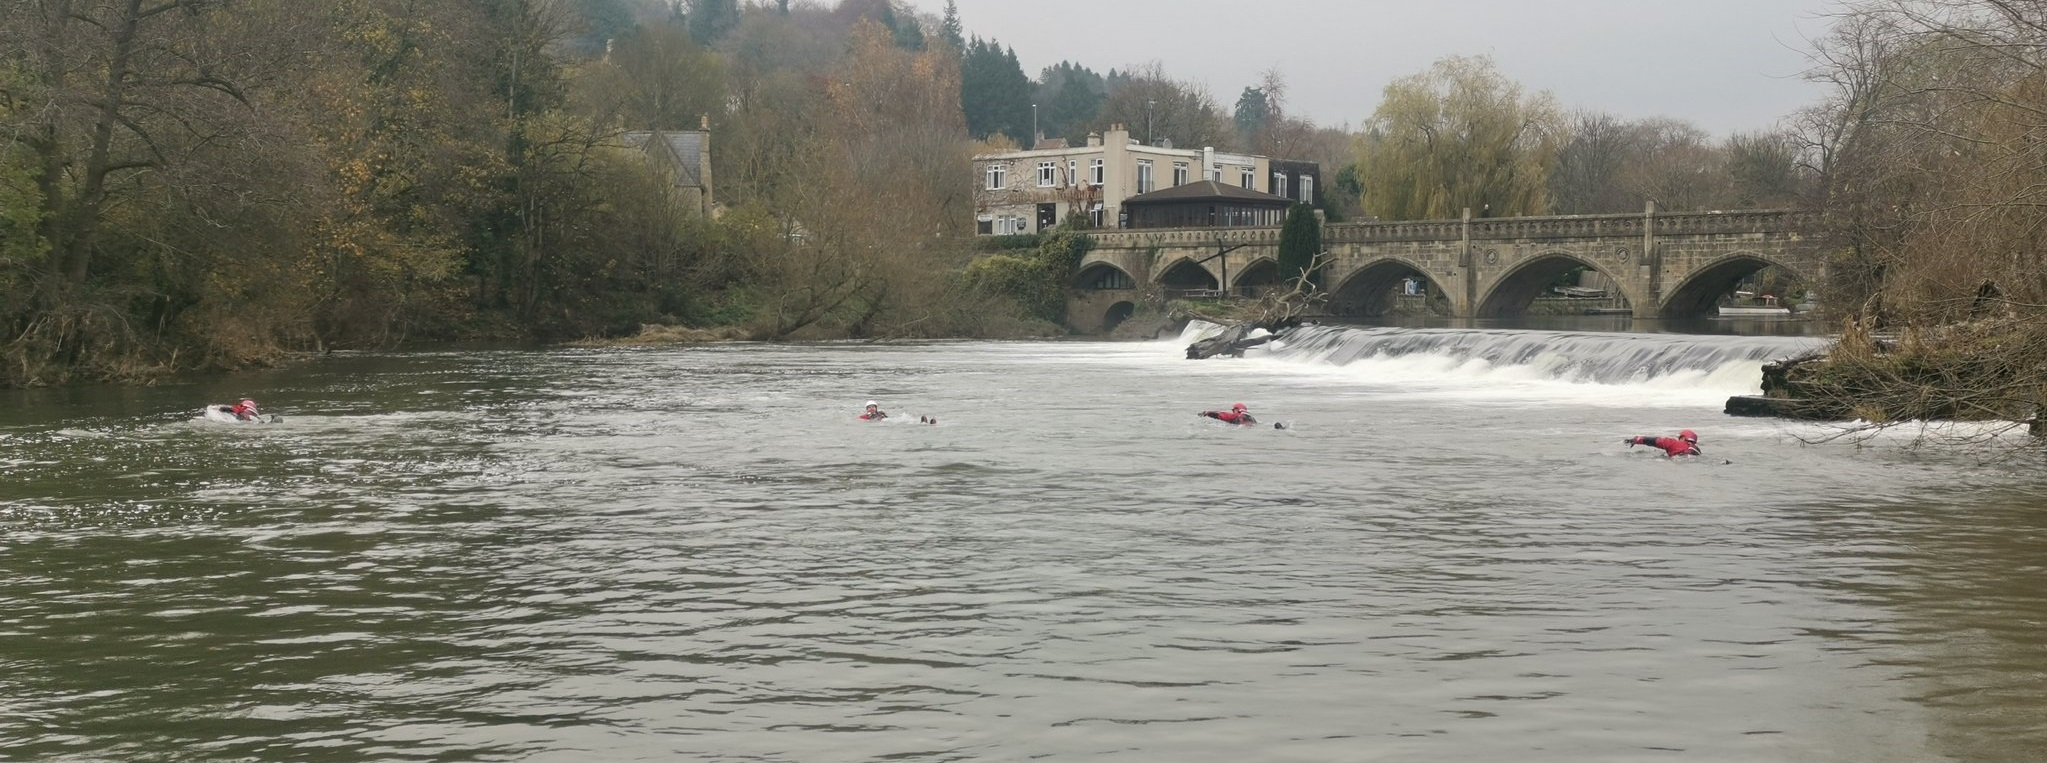 Avon Fire & Rescue Service (AF&RS) is warning of the dangers of swimming in lakes and rivers